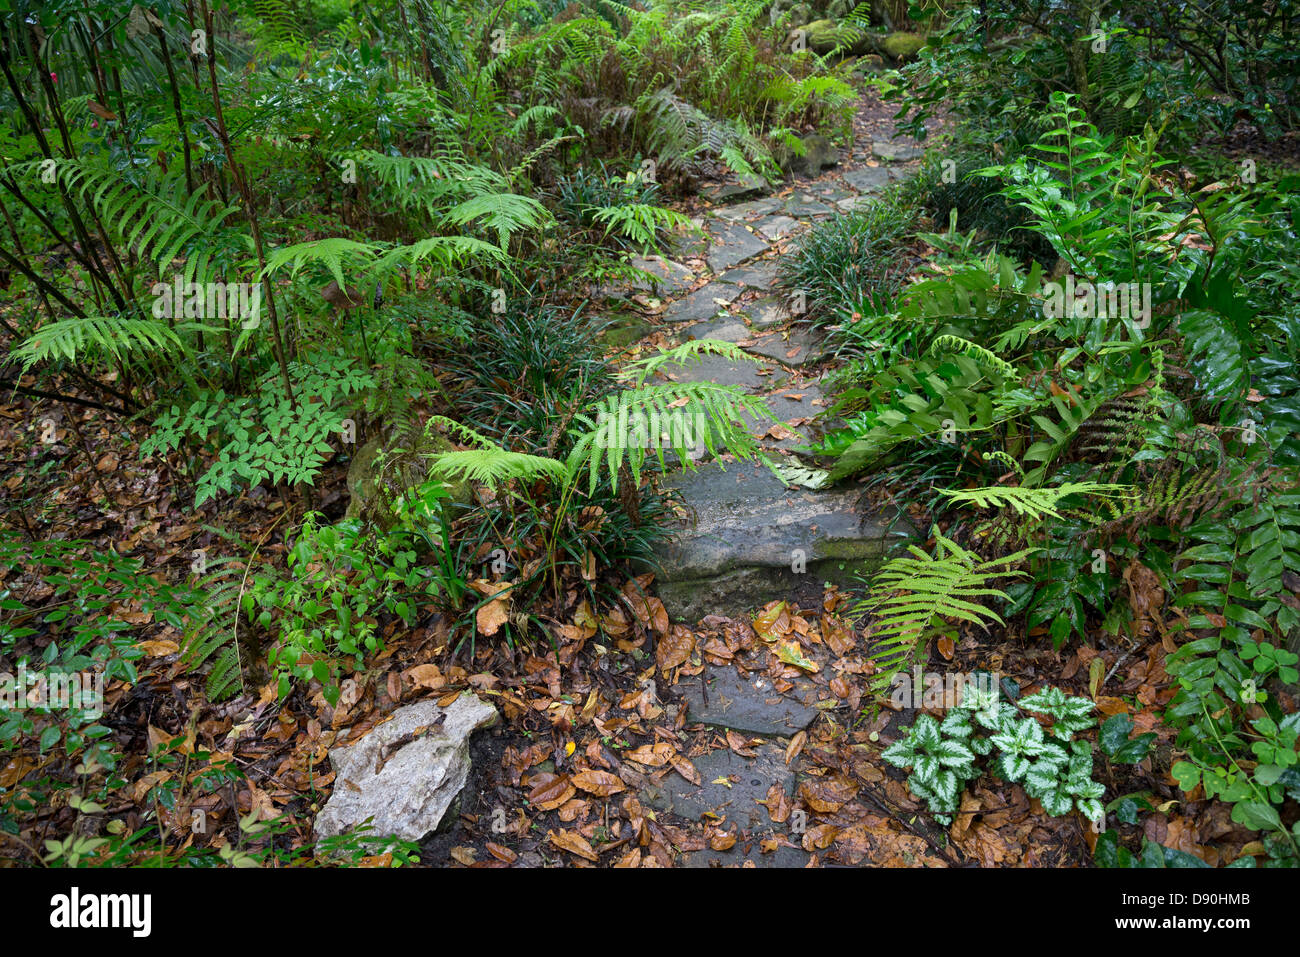 Beautiful natural gardens - Beautiful Springtime Natural Garden Setting With Ferns Rocks And Fallen Leaves